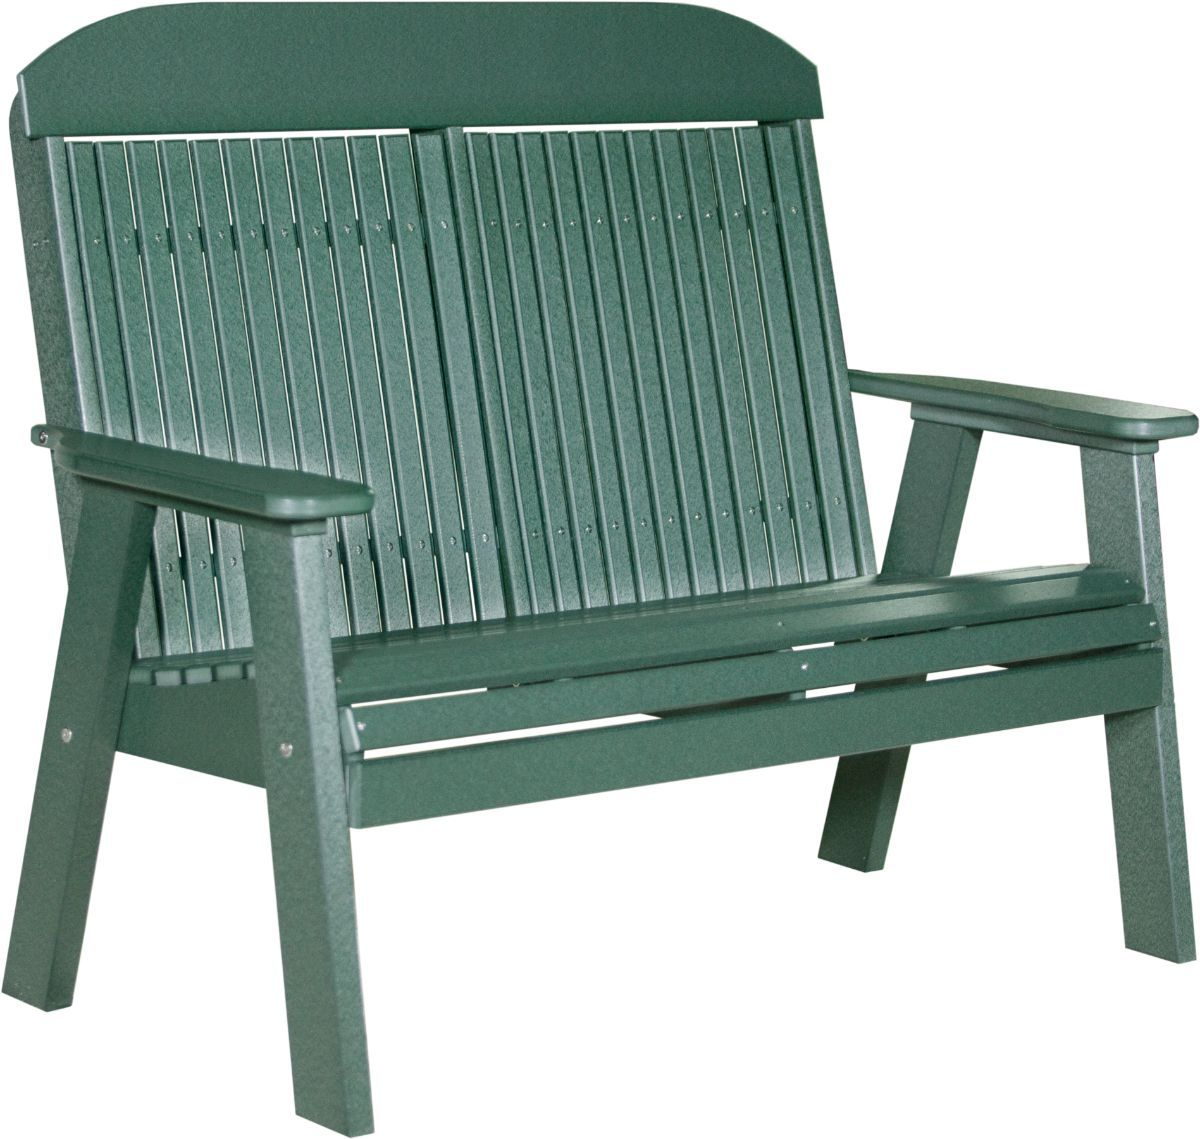 Green Stockton Patio Bench